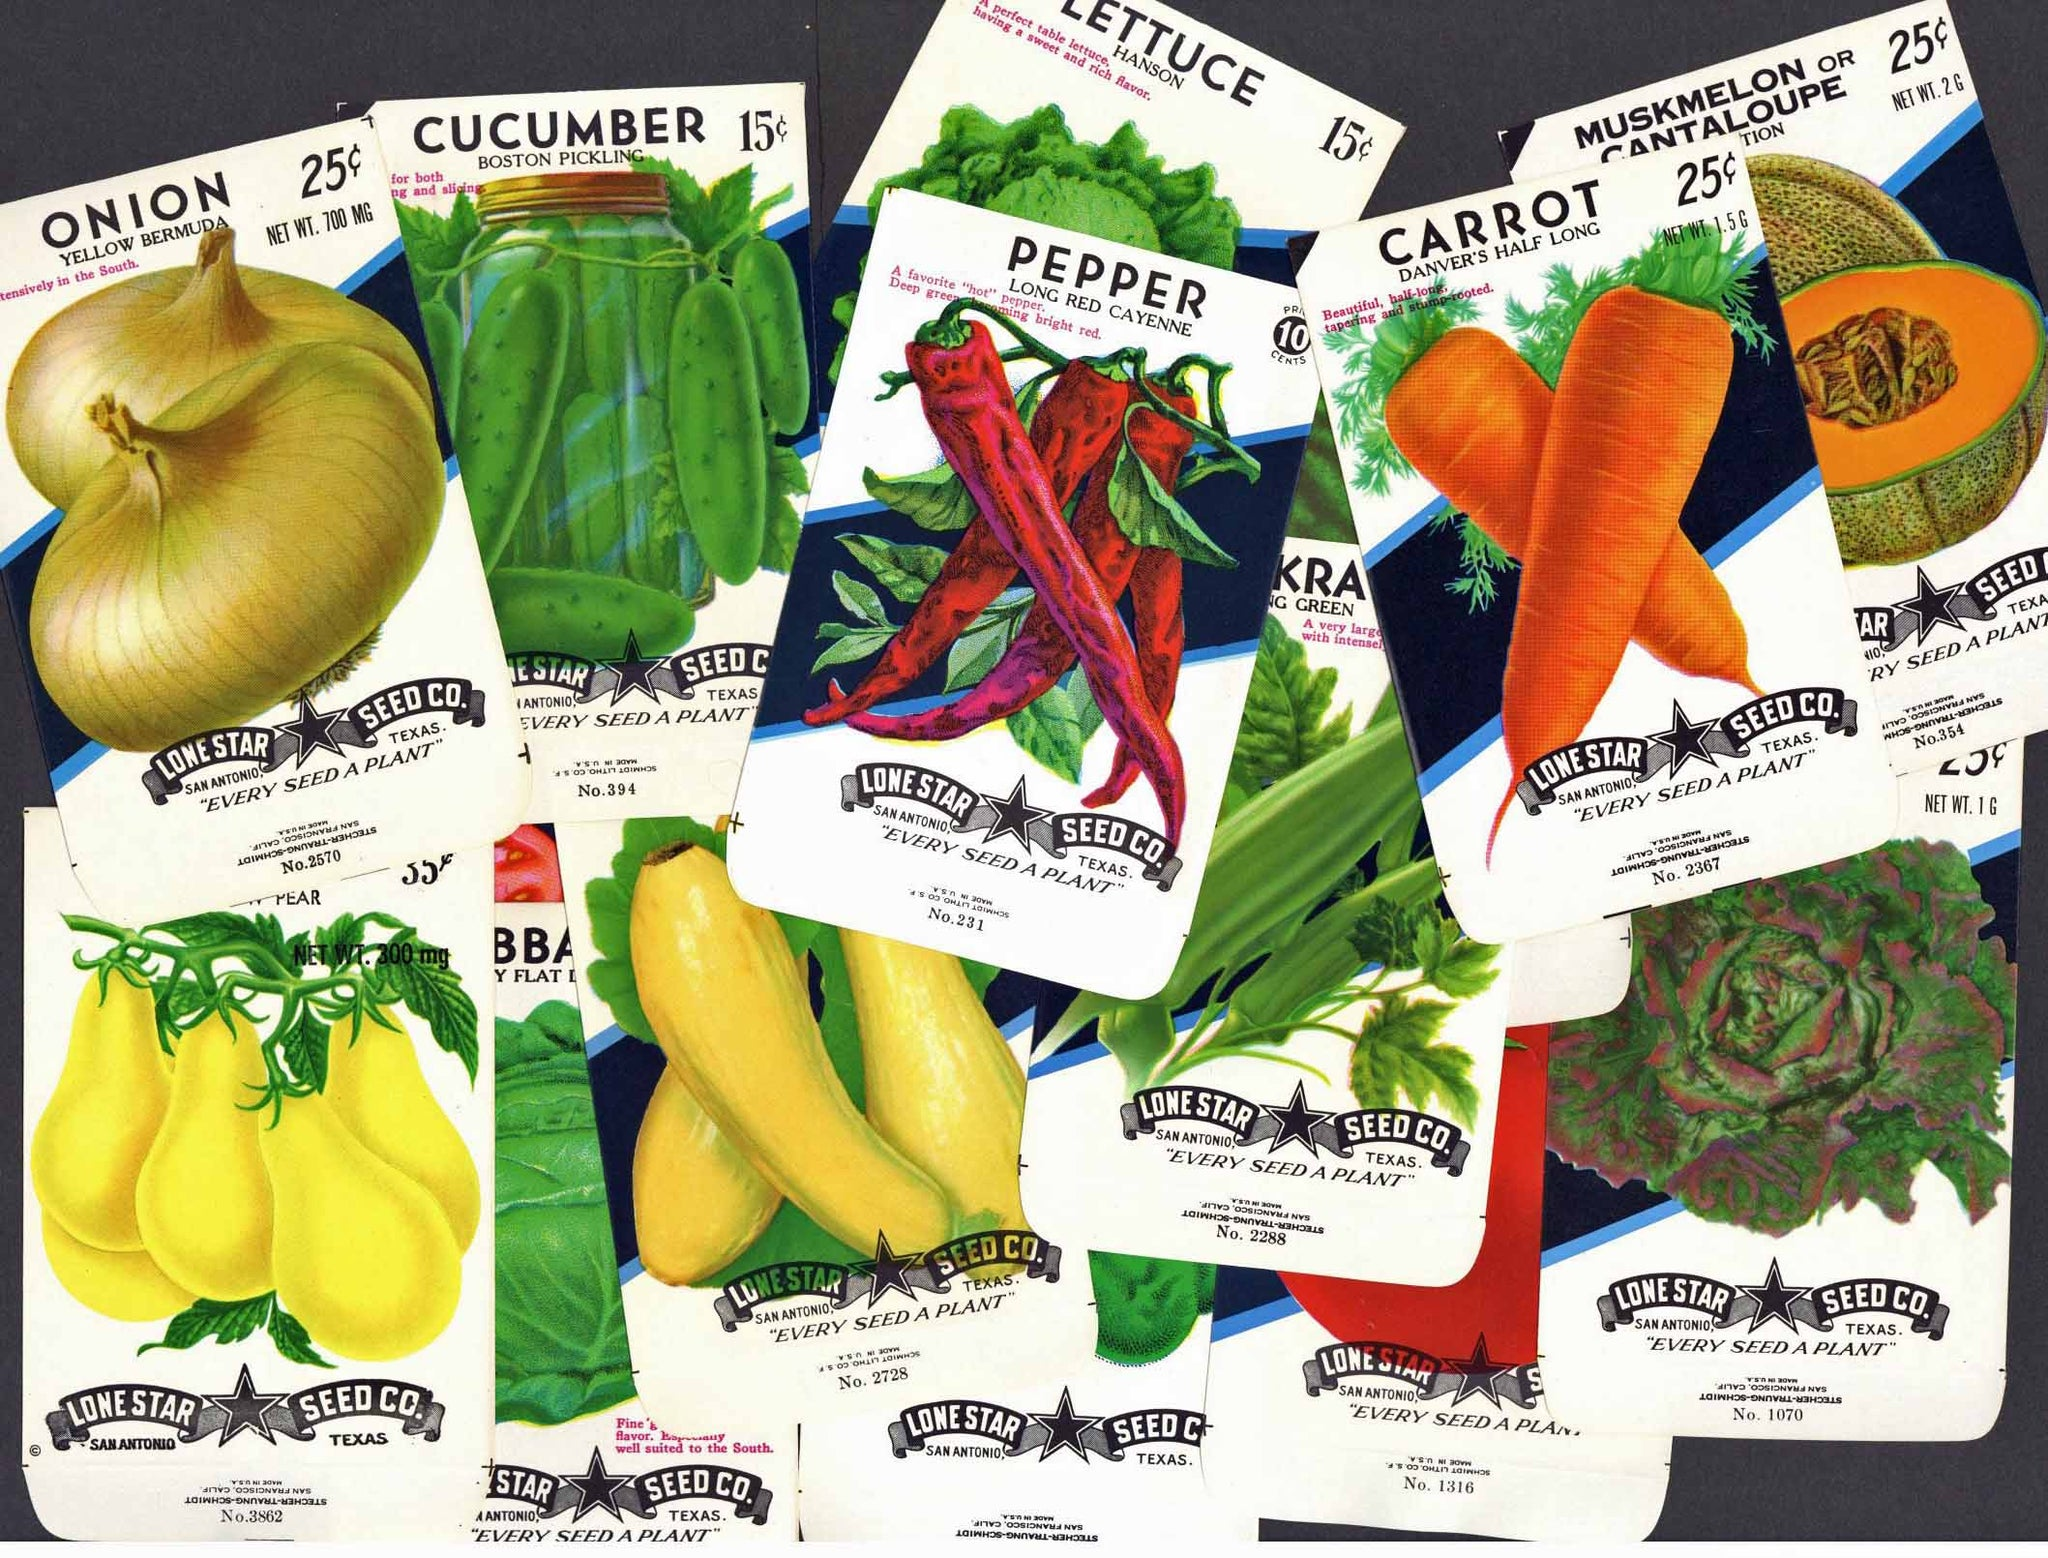 A Collection of 15 Vintage Vegetable Seed Packets